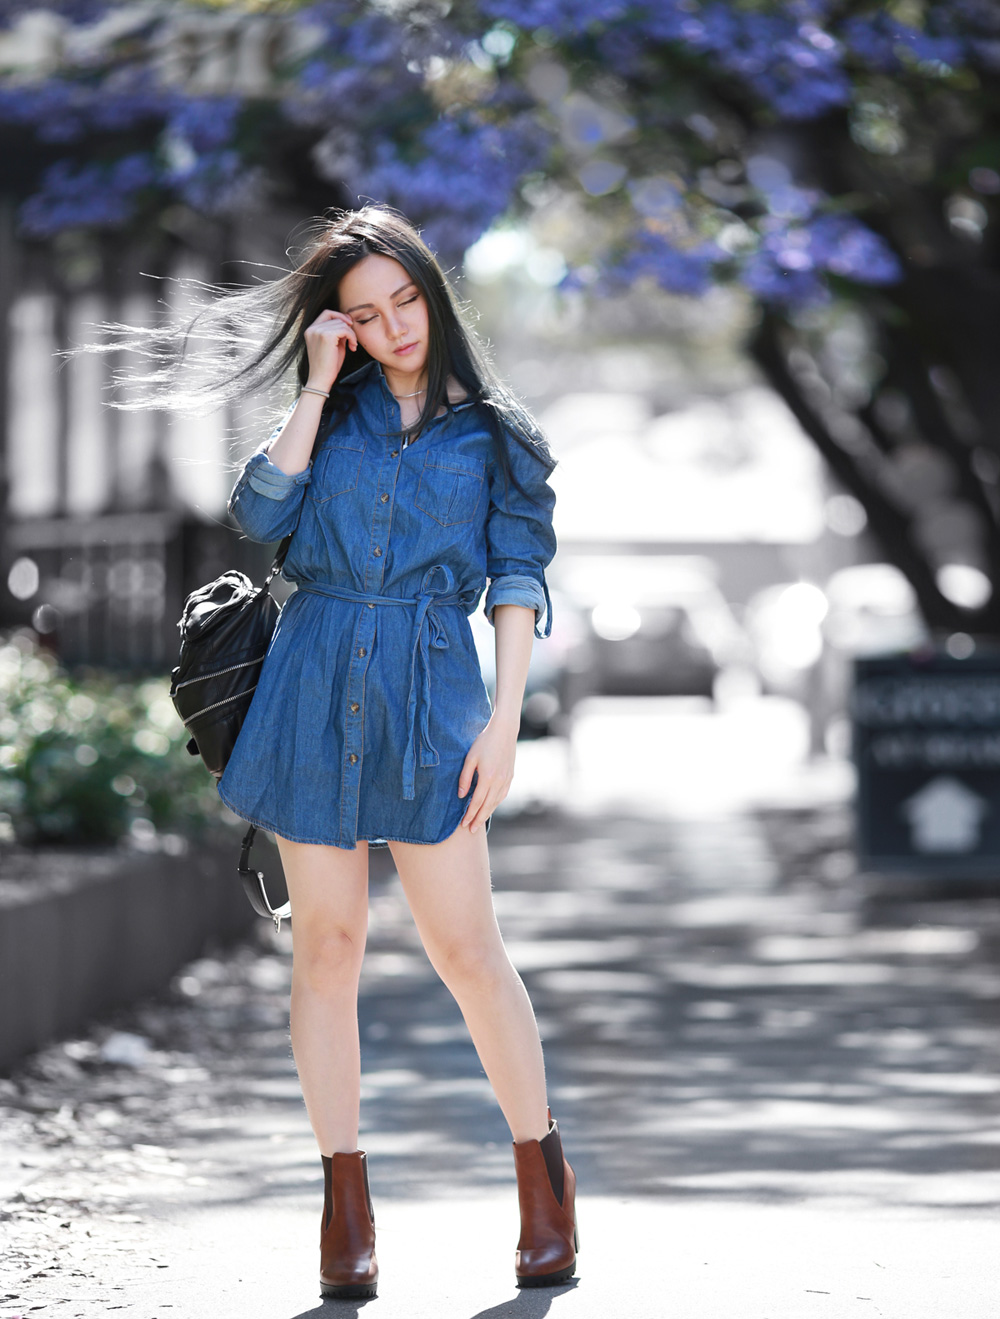 Denim Dress - Chloe Ting - Melbourne Fashion Blogger